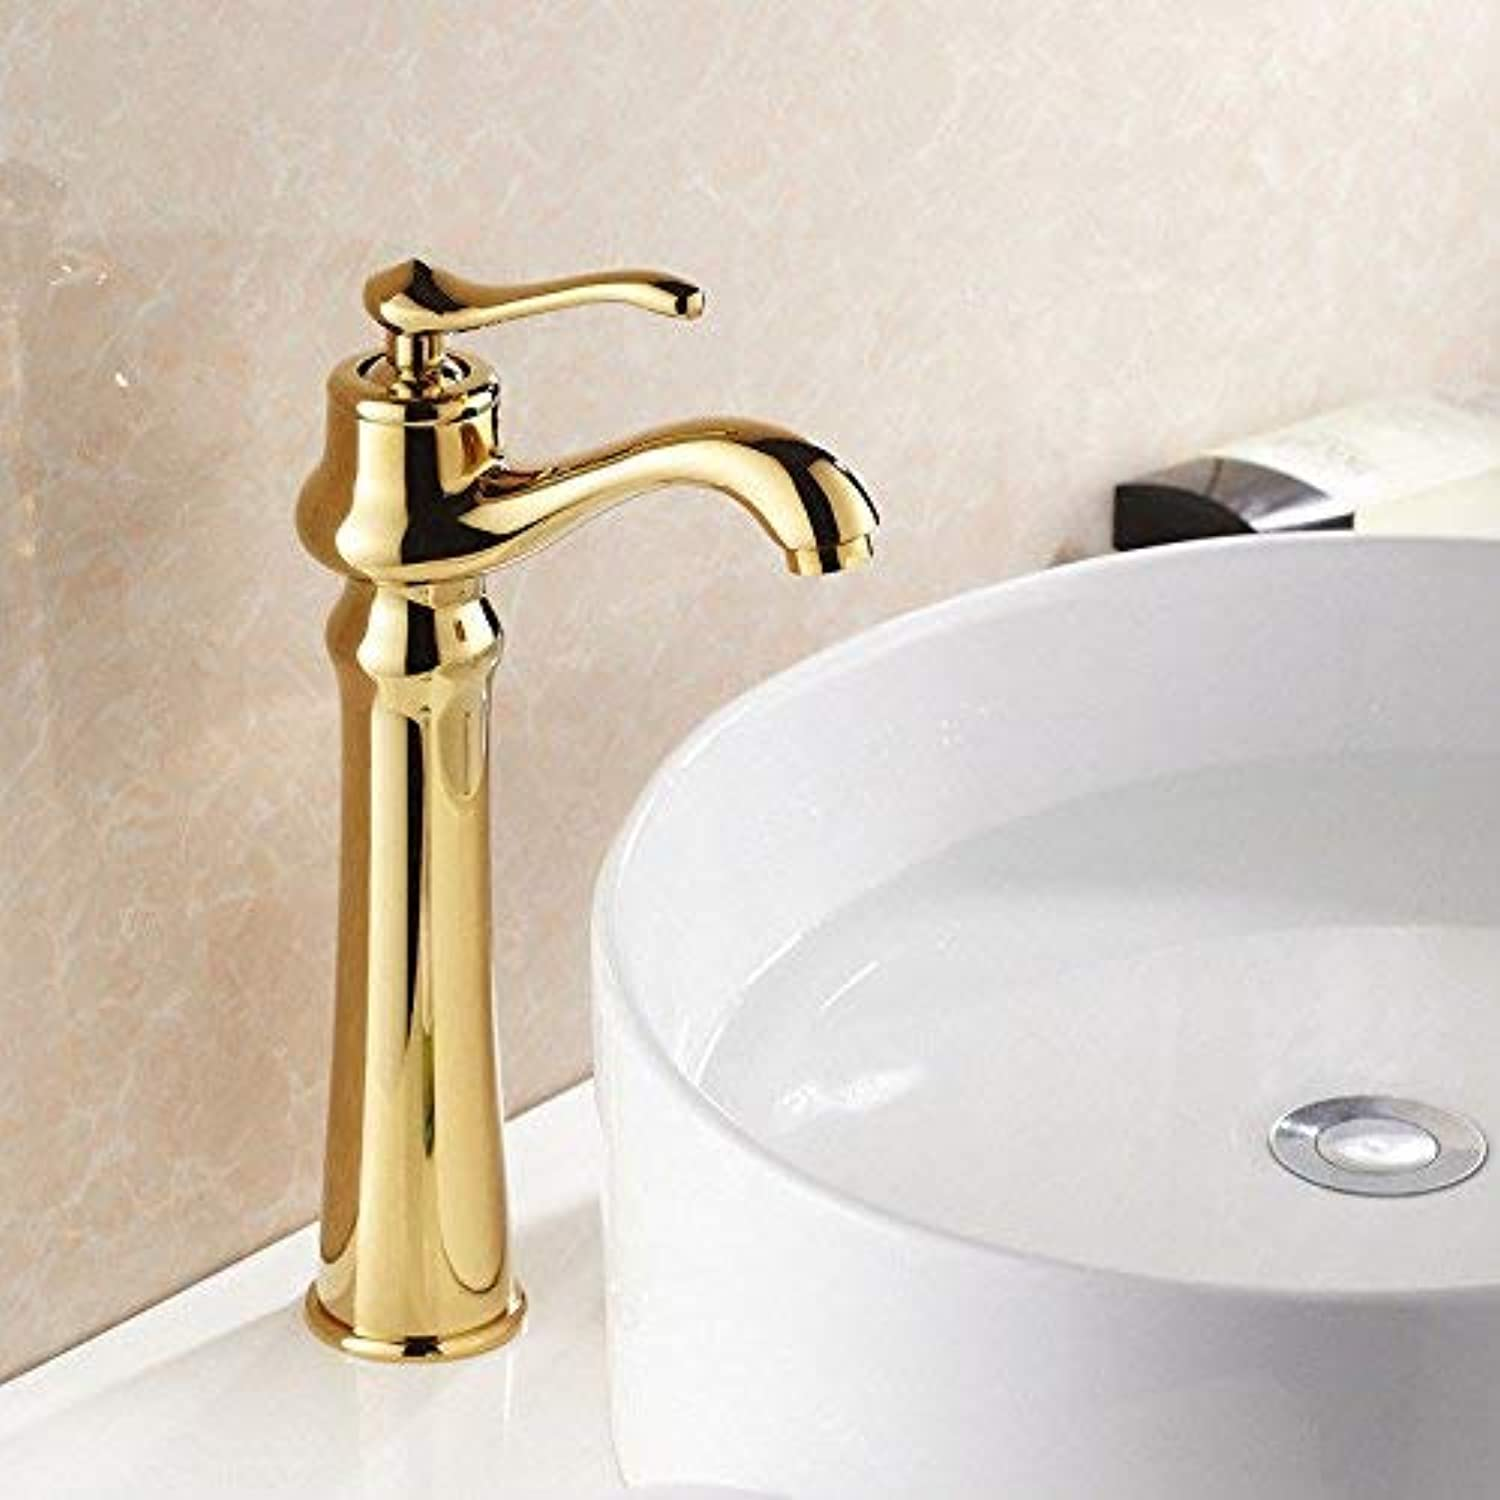 NANIH Home Sink Mixer Tap Bathroom Kitchen Basin Tap Leakproof Save Water Hot And Cold Kitchen gold Copper Plated Antique Mix